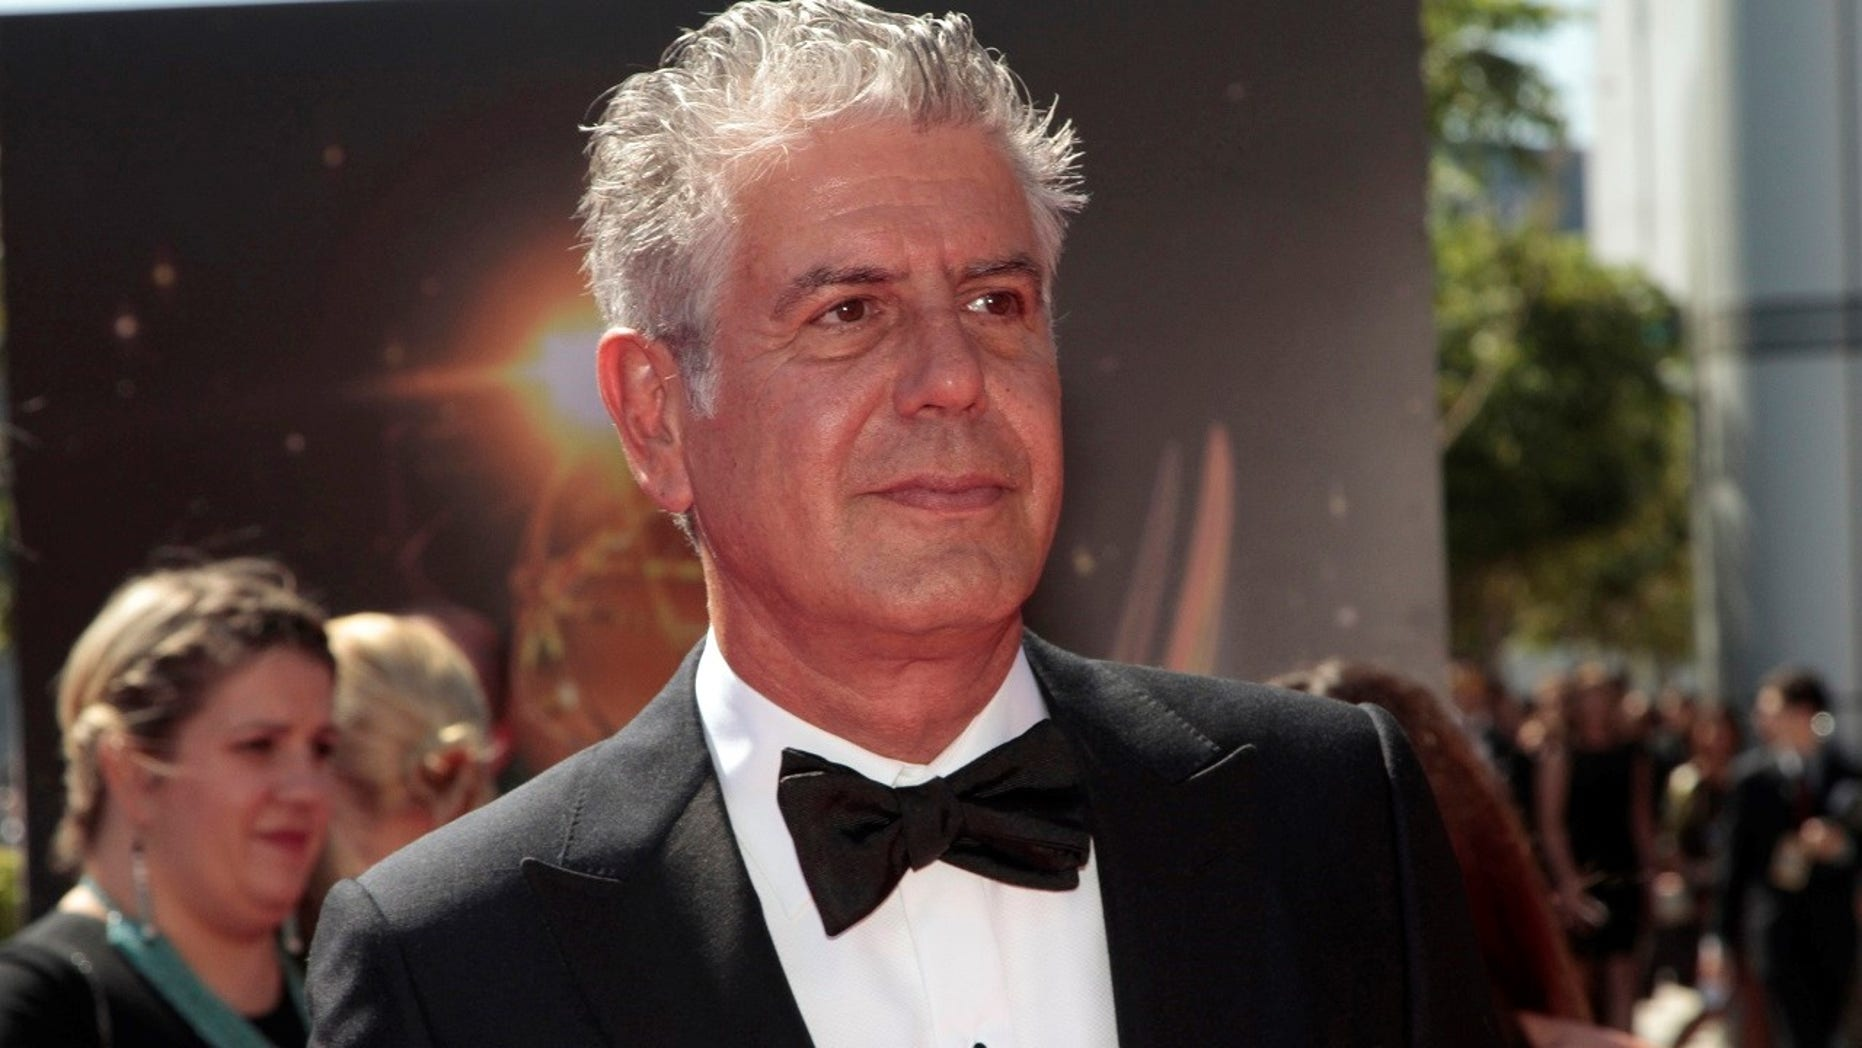 """Anthony Bourdain described Harvey Weinstein conspirators as """"beneath whale s--t"""" on Monday after a bombshell report by The New Yorker."""